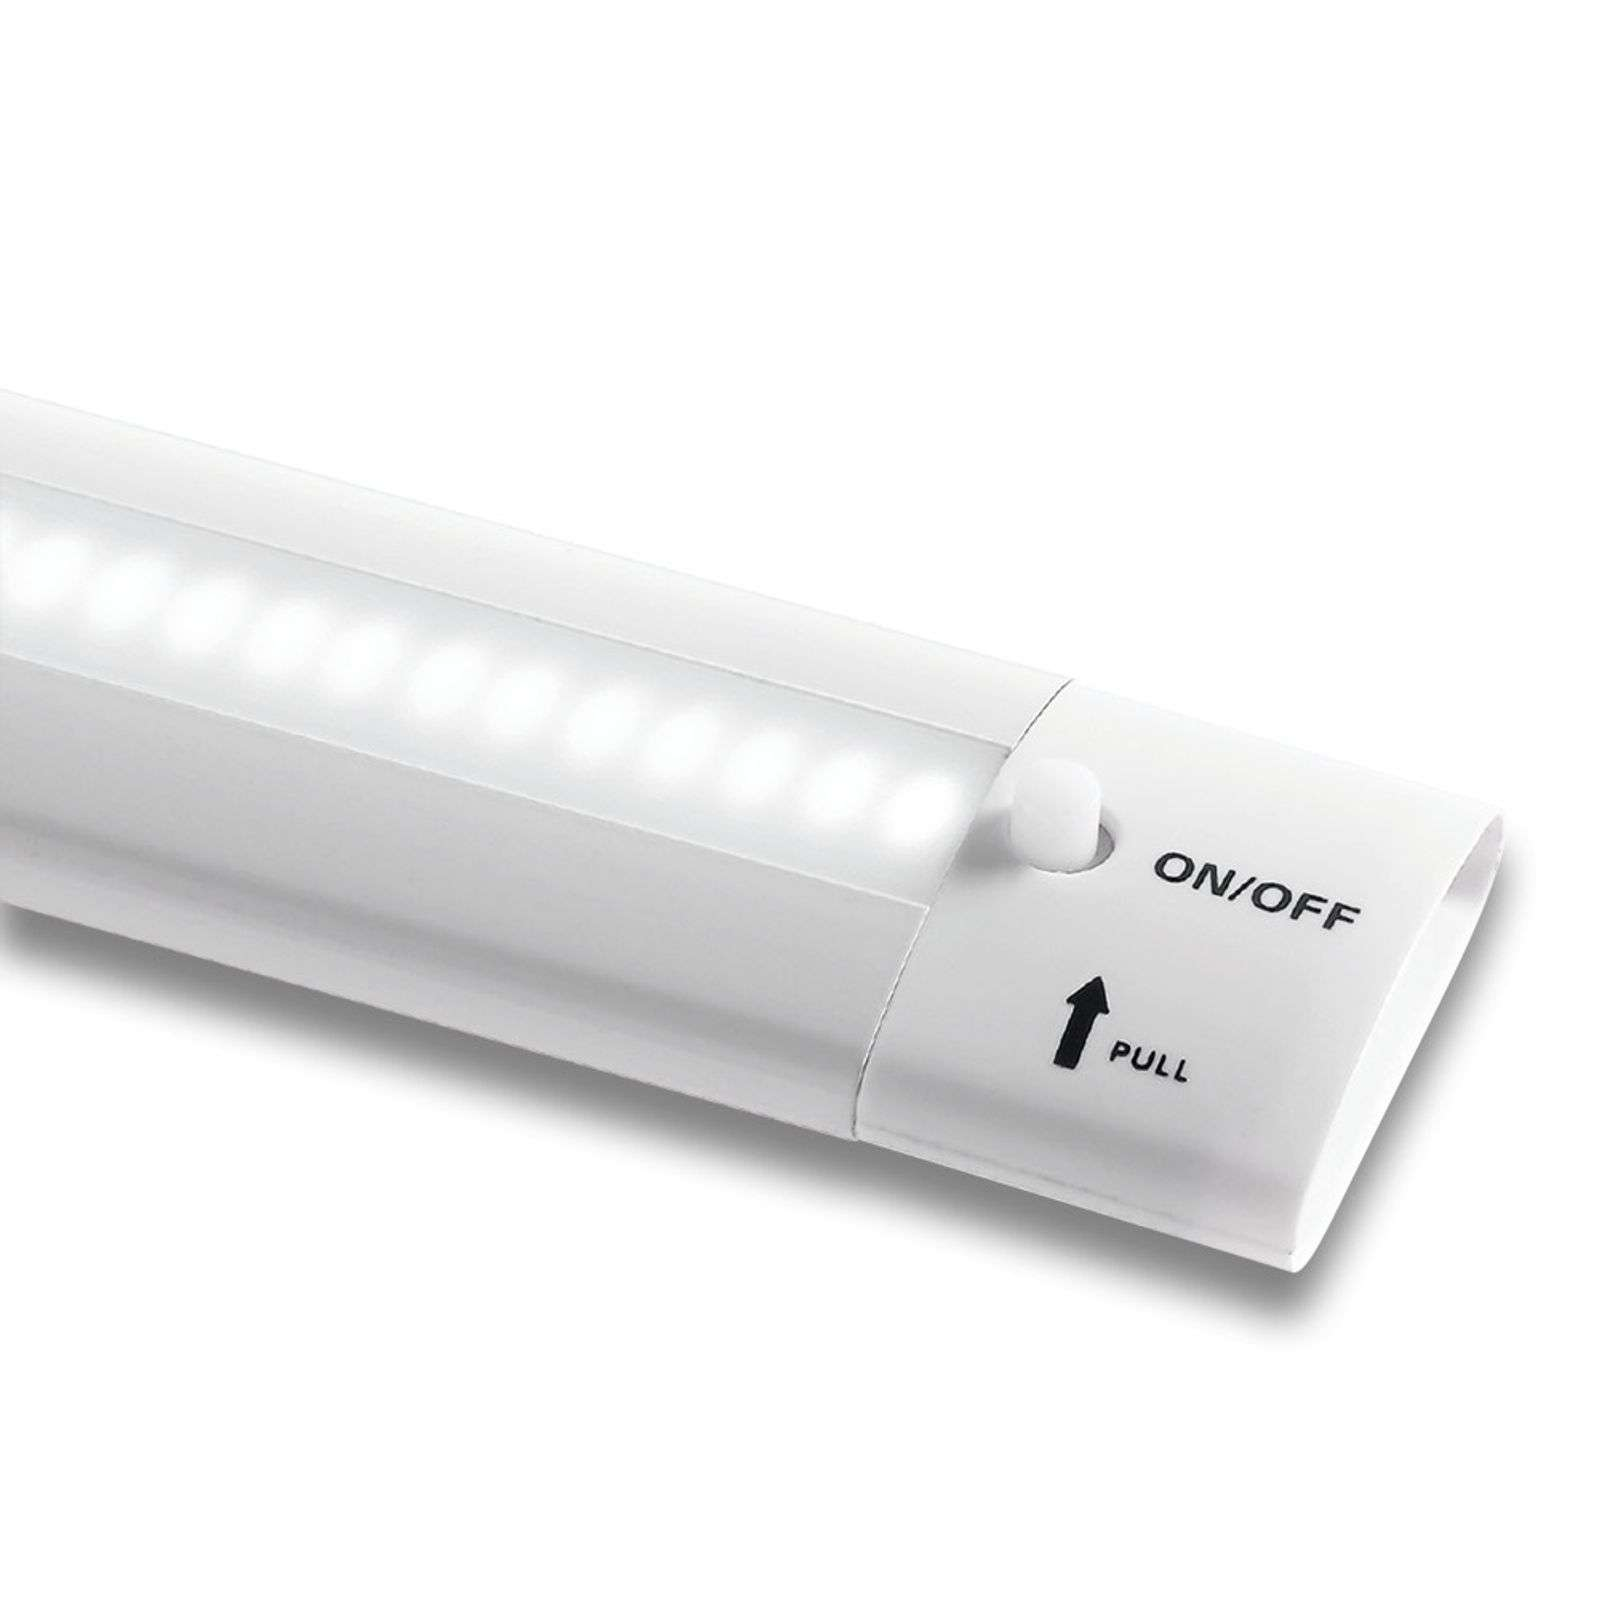 Lampada sottopensile LED 16W Galway 6690, bianco